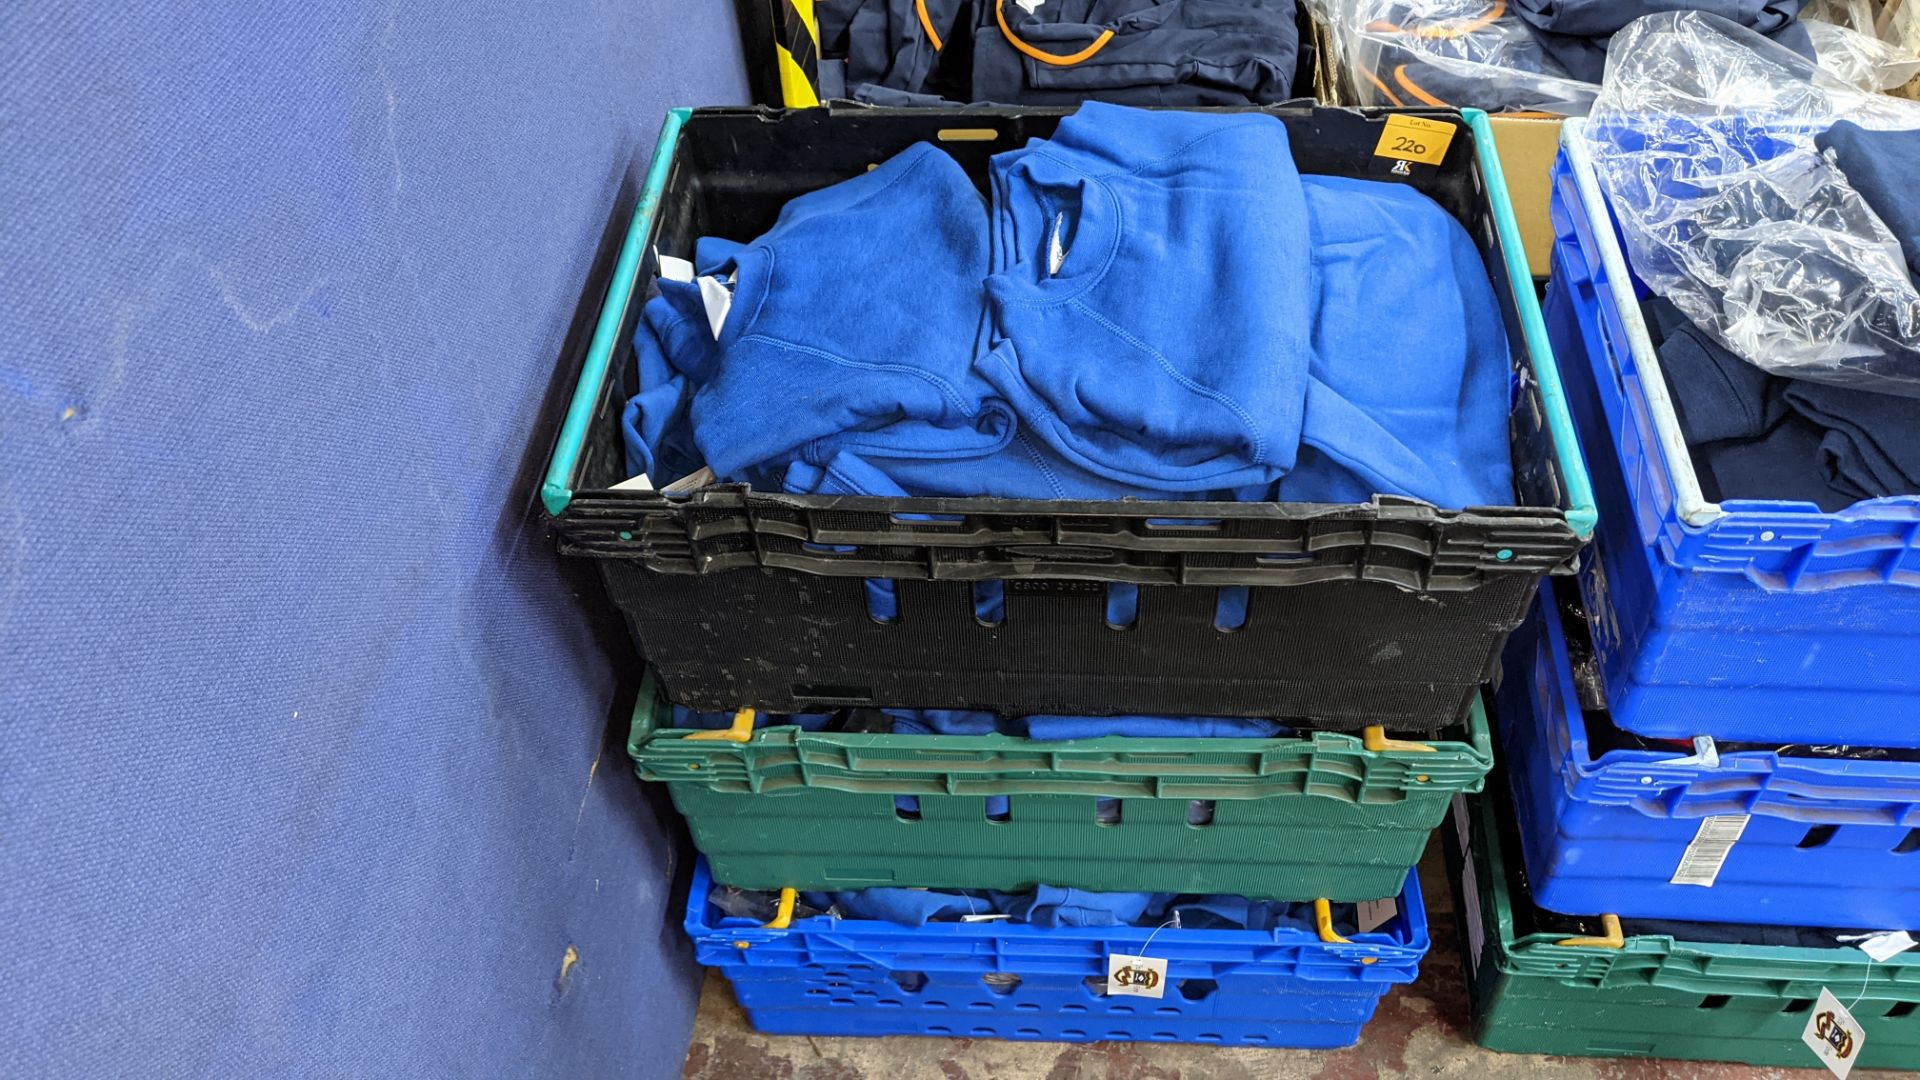 Approx 58 off children's blue sweatshirts - the contents of 3 crates. NB crates excluded - Image 2 of 6